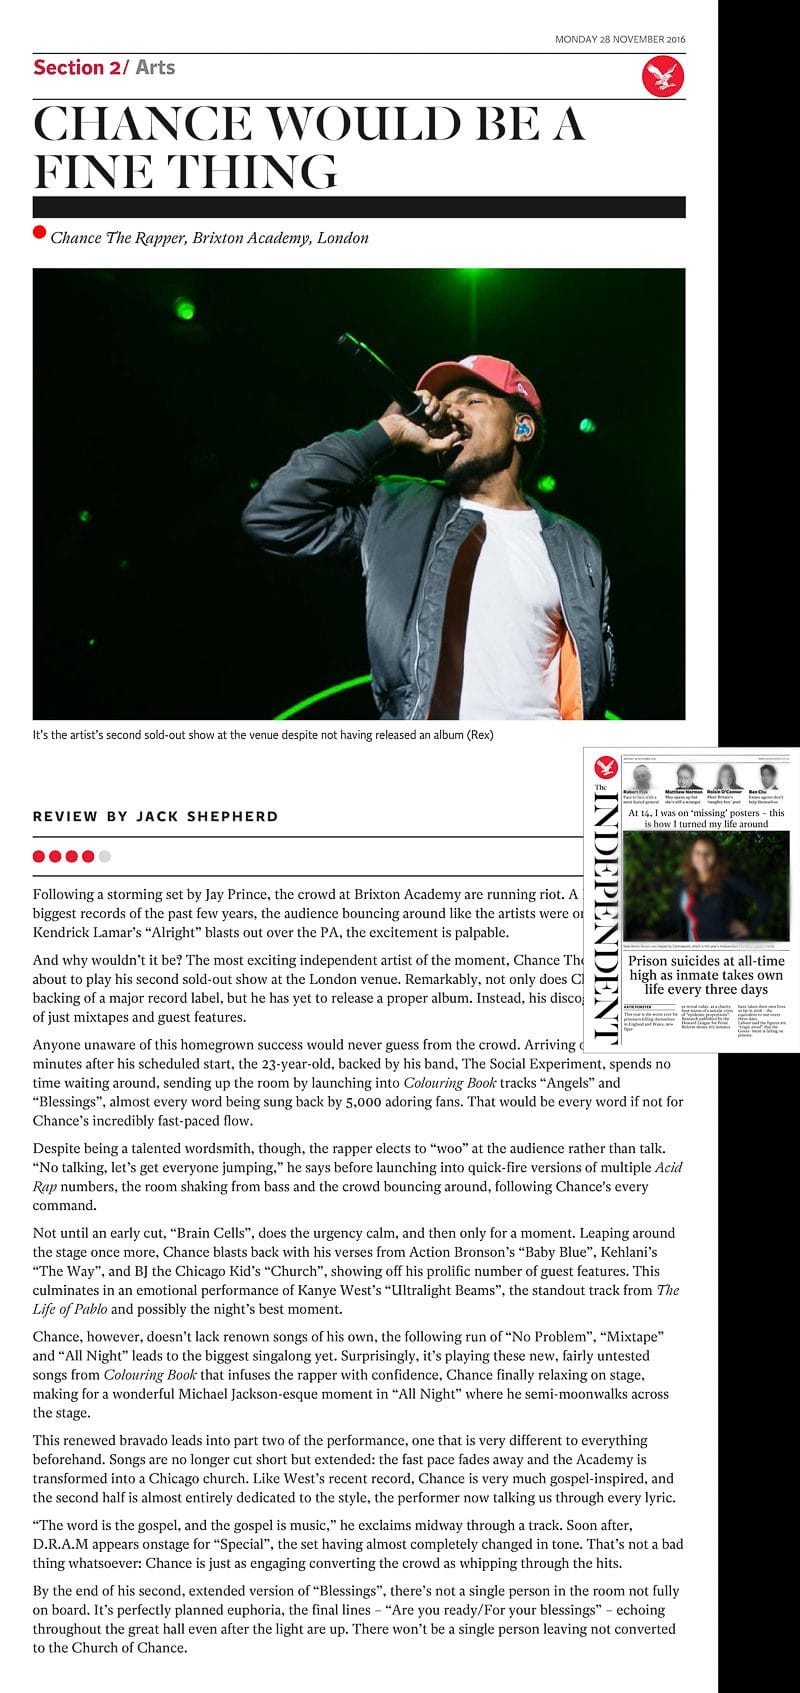 Image usage - The Independent newspaper 28 Nov 2016 - Chance the Rapper live at O2 Academy Brixton 22 Nov 2016